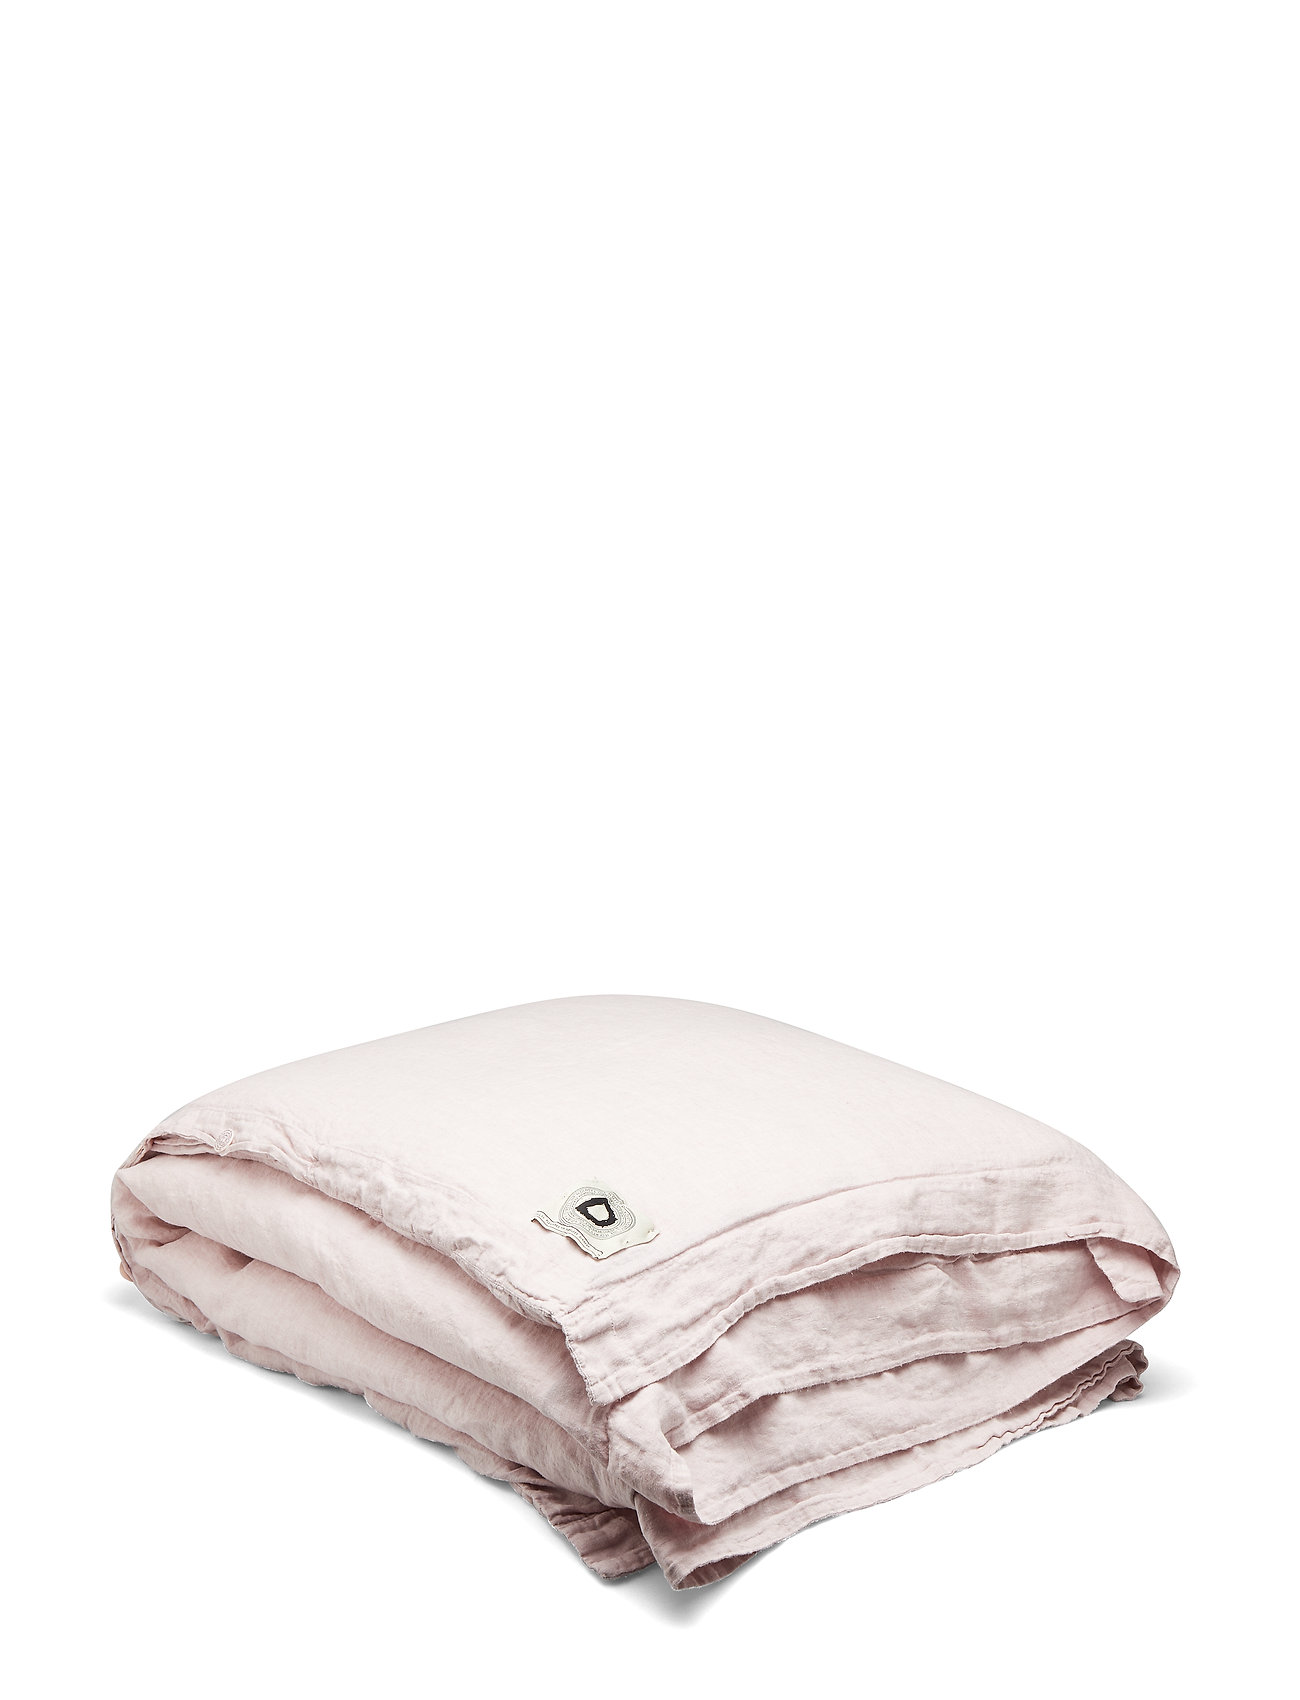 Dirty Linen Animeaux duvet cover - BON BON